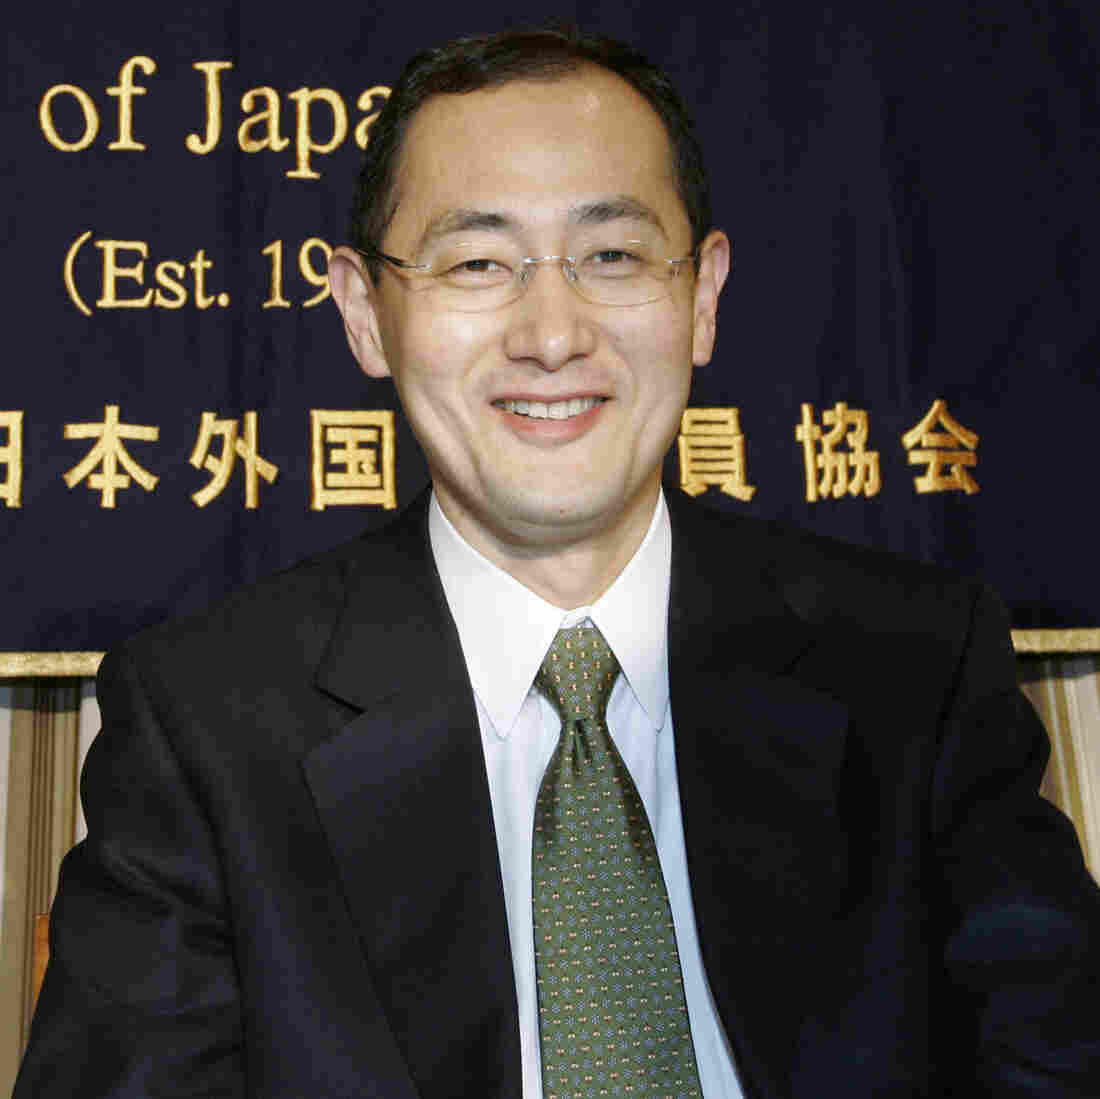 Shinya Yamanaka from Kyoto University was named the winner of the Nobel Prize in Physiology or Medicine for discovering how mature, adult cells can be reprogrammed into immature stem cells.